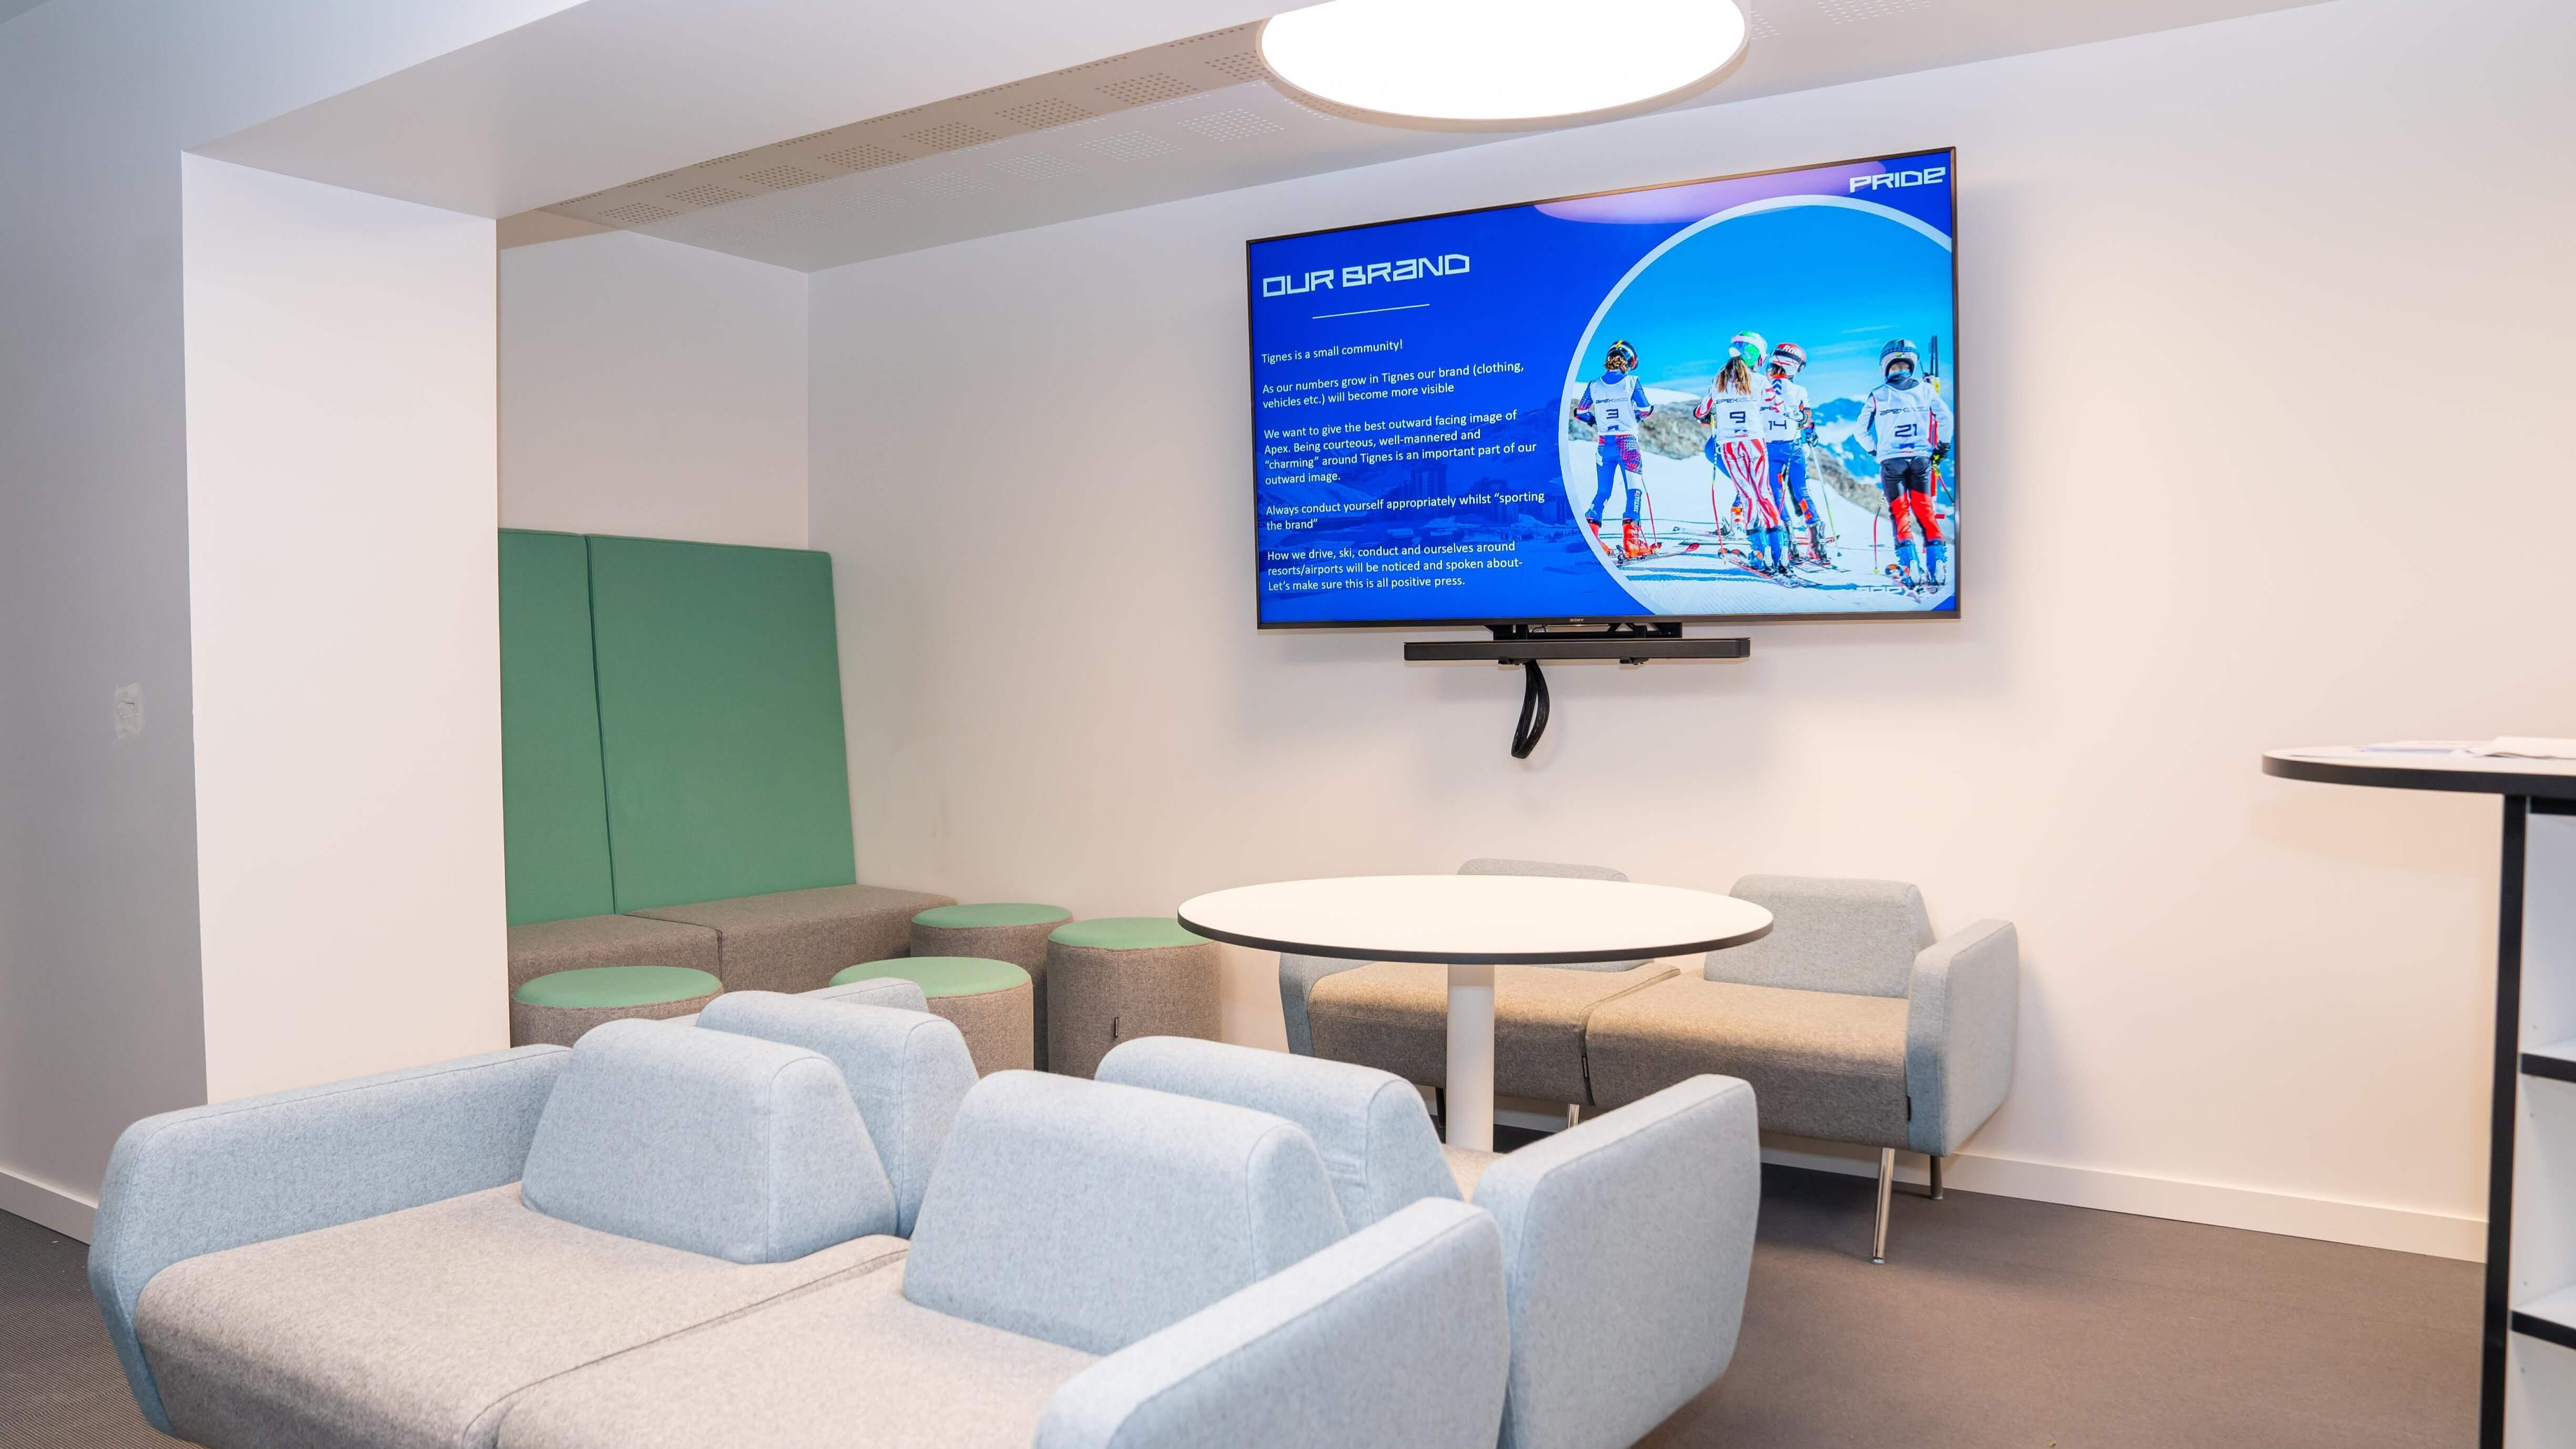 Apex2100 embrace digital signage at their state of the art facilities TrilbyTV